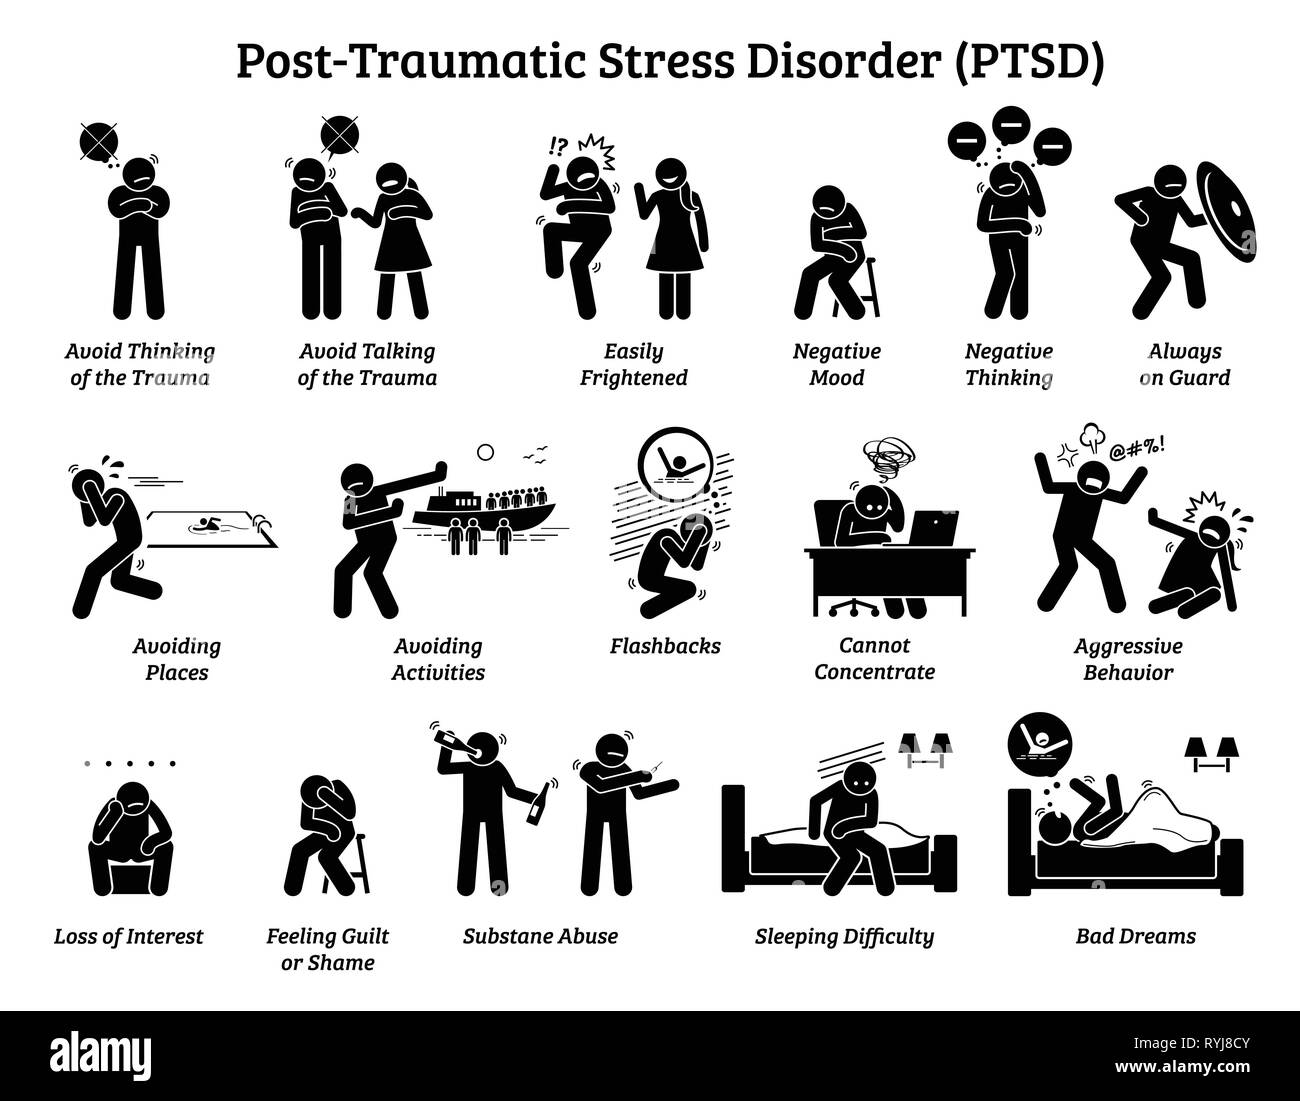 Post Traumatic Stress Disorder PTSD signs and symptoms. Illustrations depict man with post traumatic stress disorder facing difficulty in life and men - Stock Image